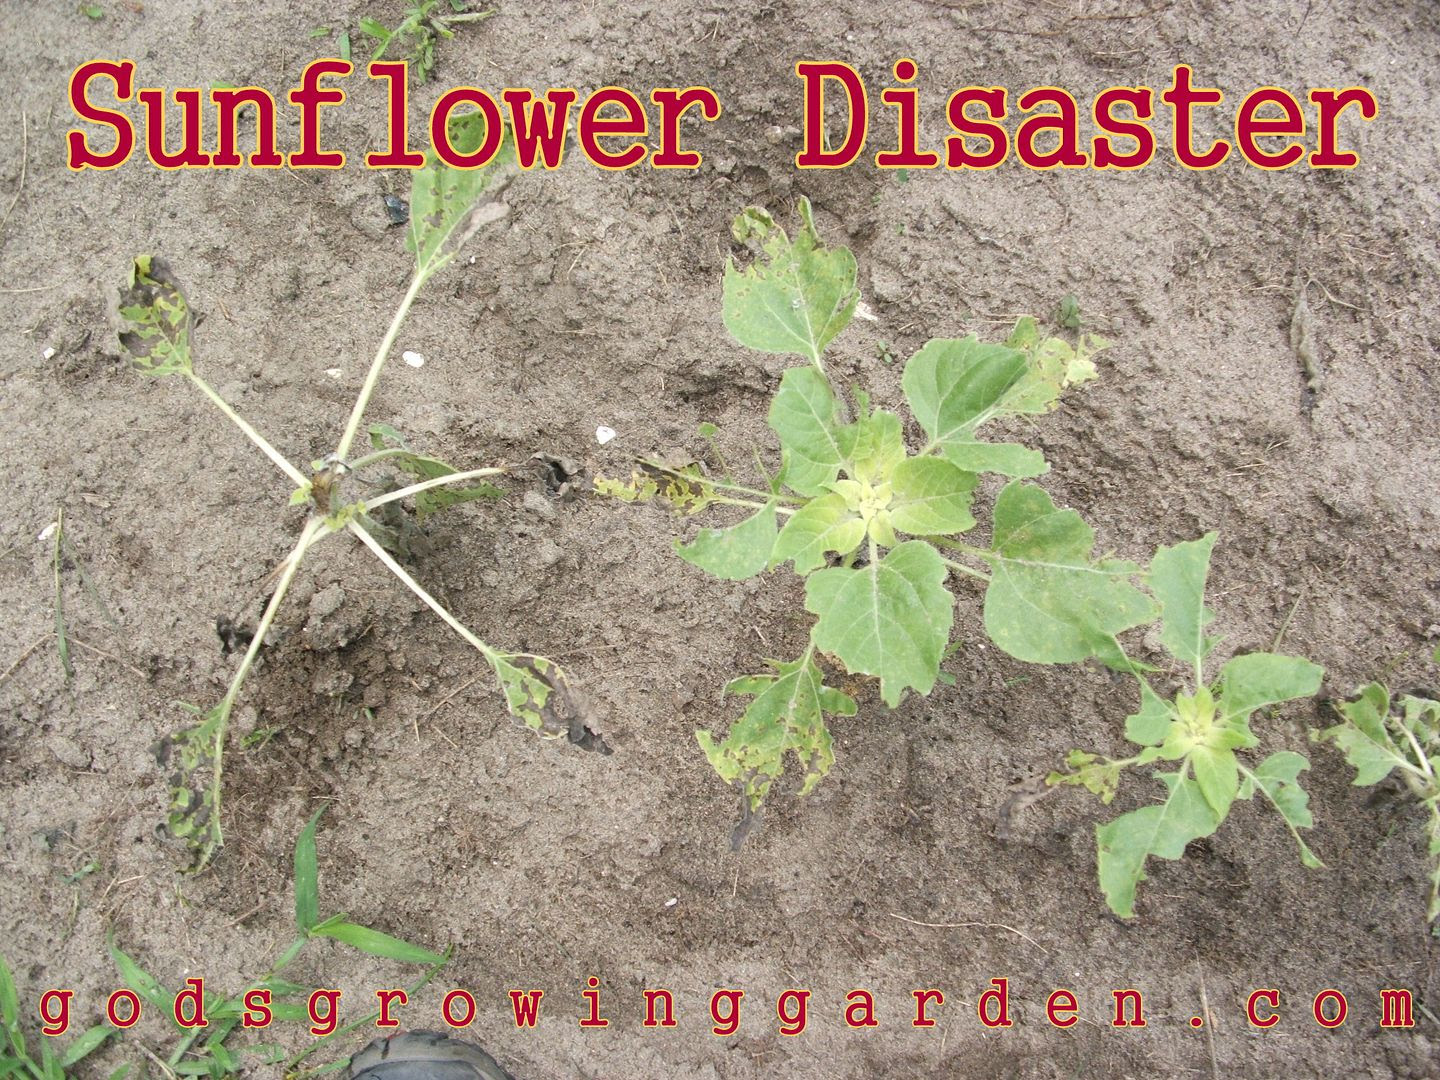 Sunflower Disaster by Angie Ouellette-Tower for godsgrowinggarden.com photo 014_zps1cfadcc3.jpg